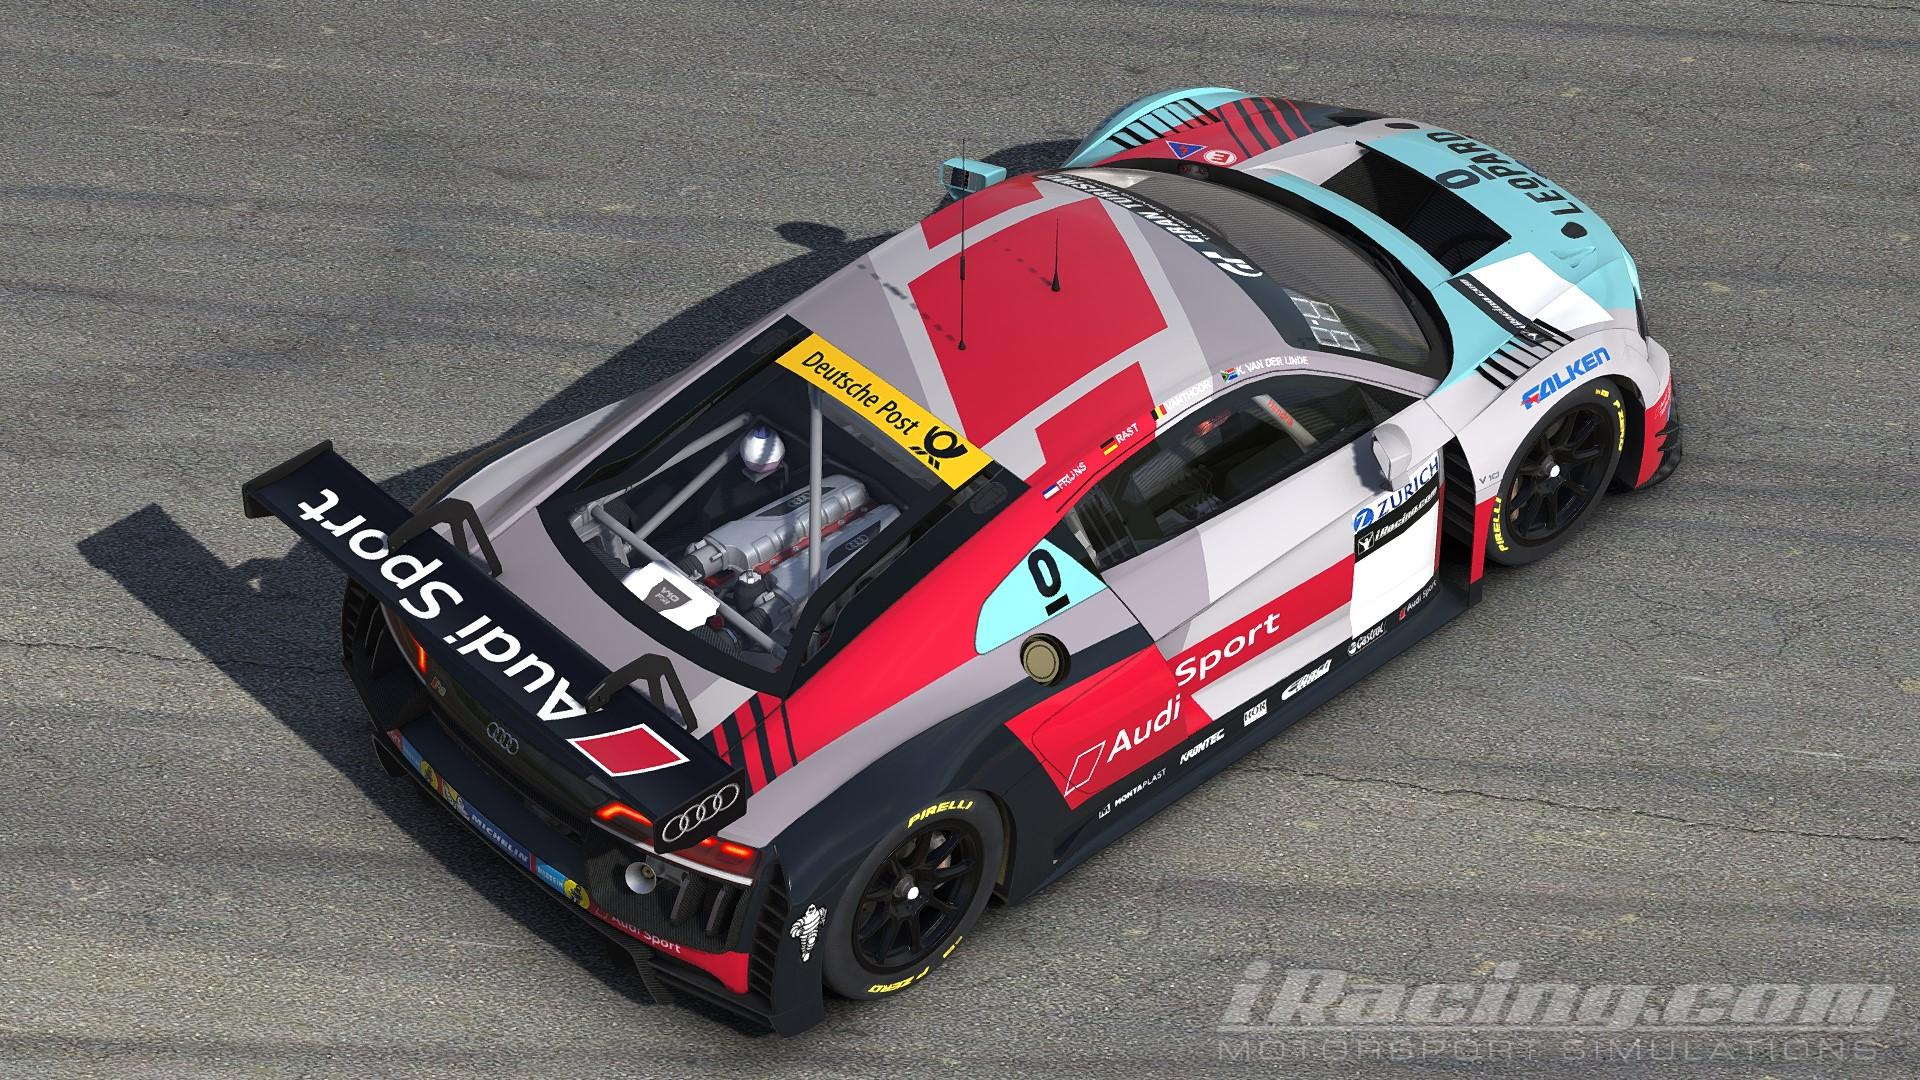 Preview of Team WRT - 24h Nürburgring 2018 by Christian Haas